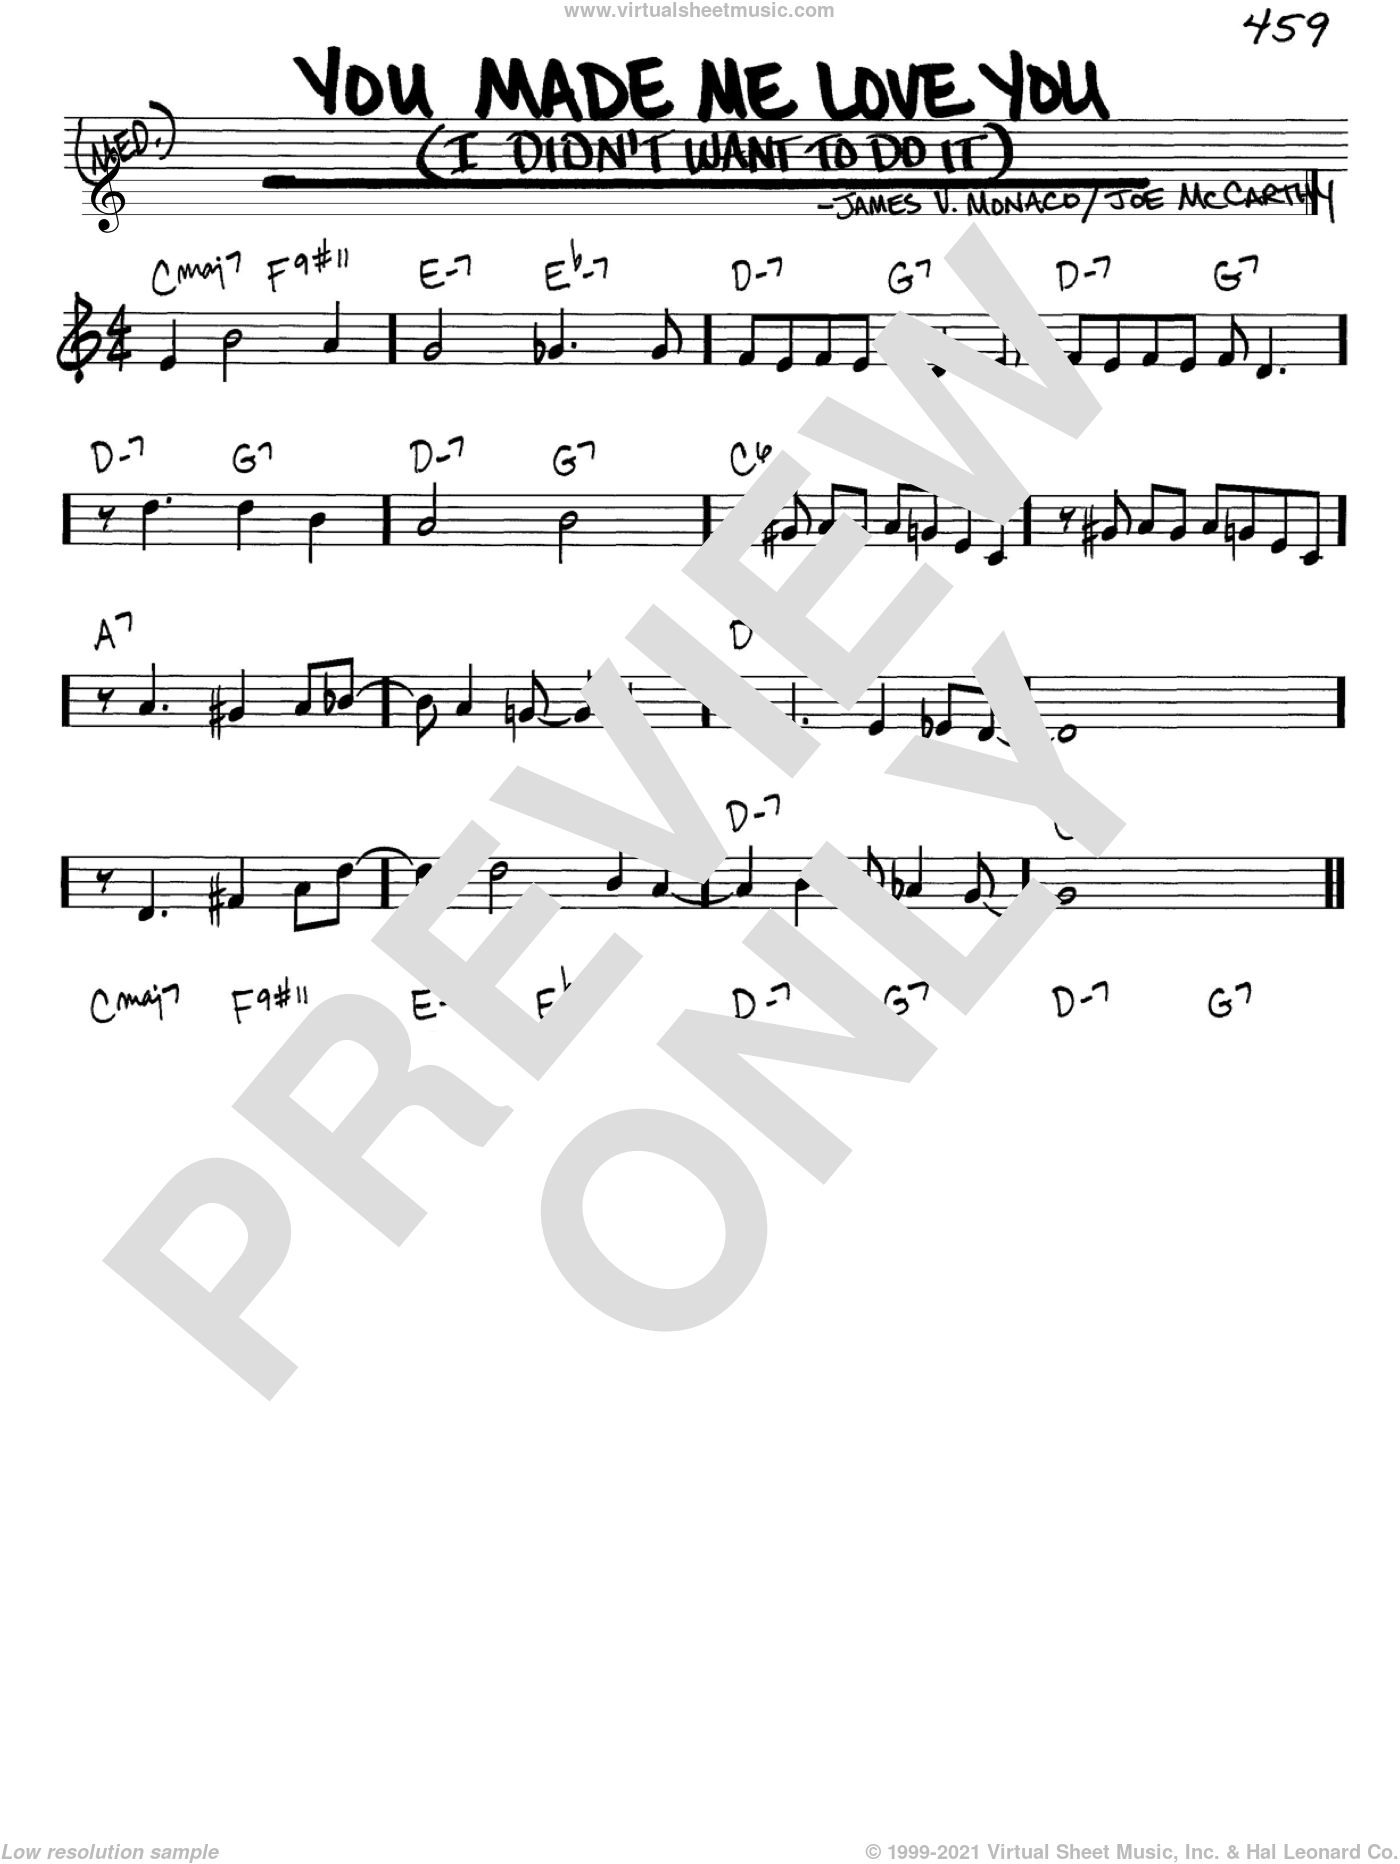 You Made Me Love You (I Didn't Want To Do It) sheet music for voice and other instruments (C) by James Monaco